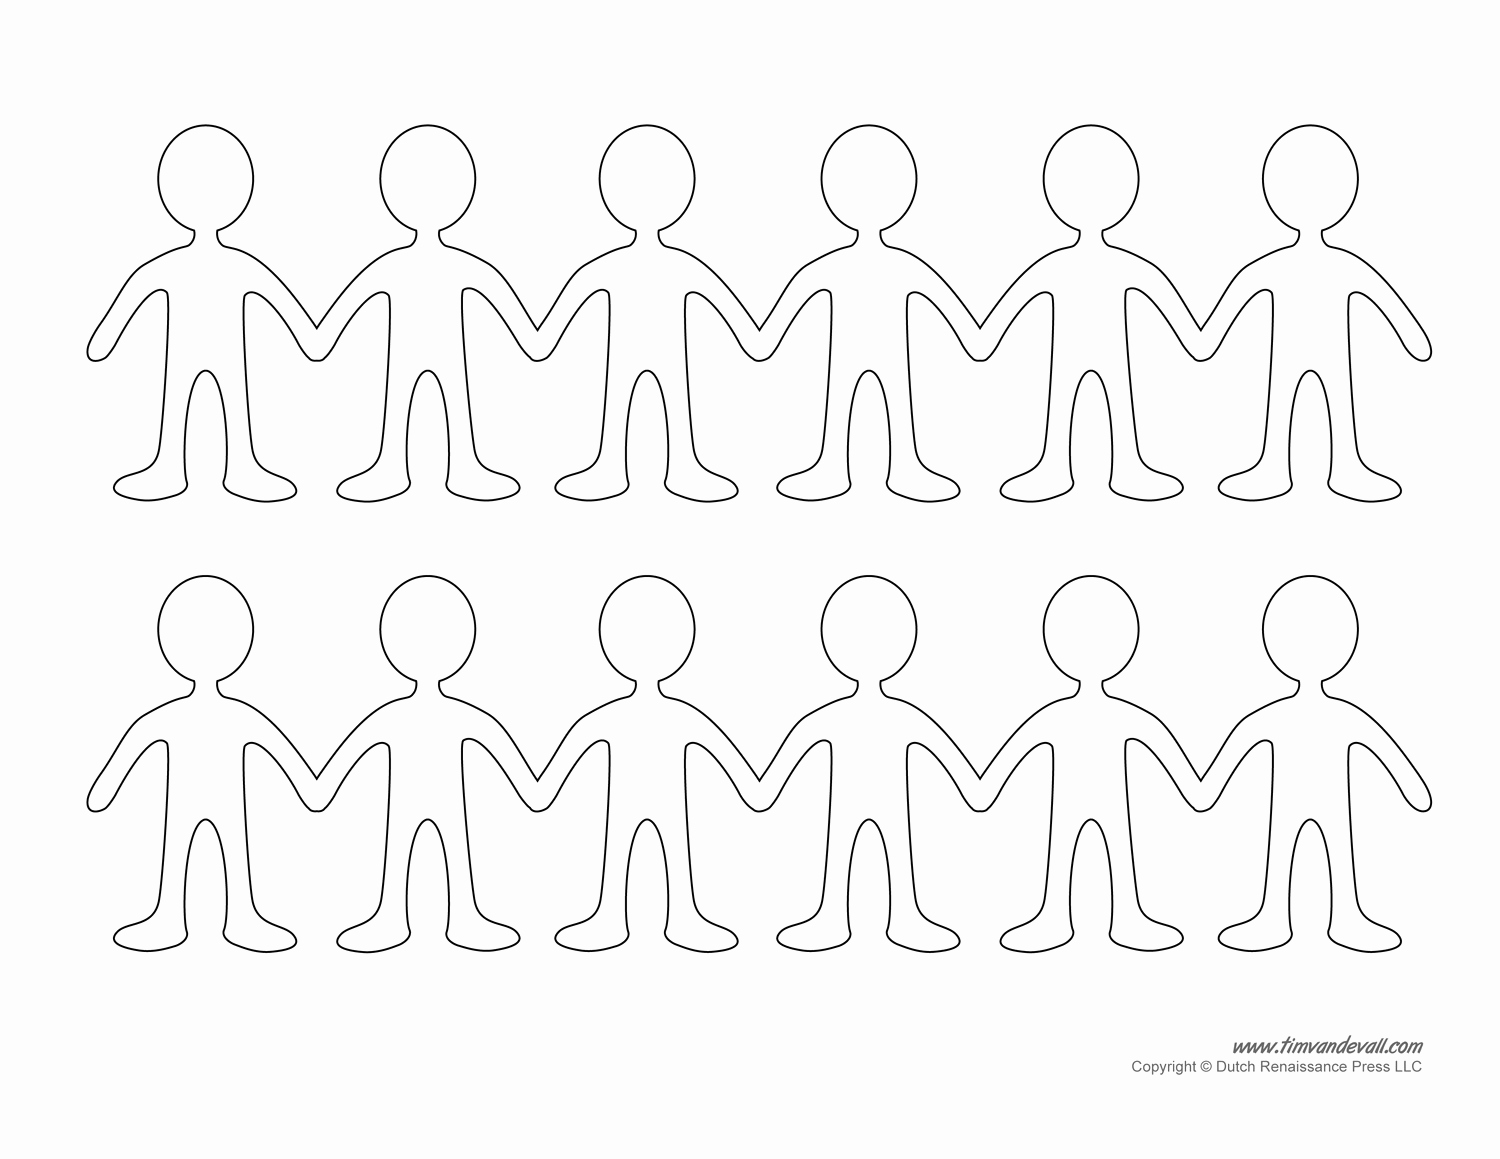 Paper Cut Outs Templates Luxury Printable Paper Doll Templates